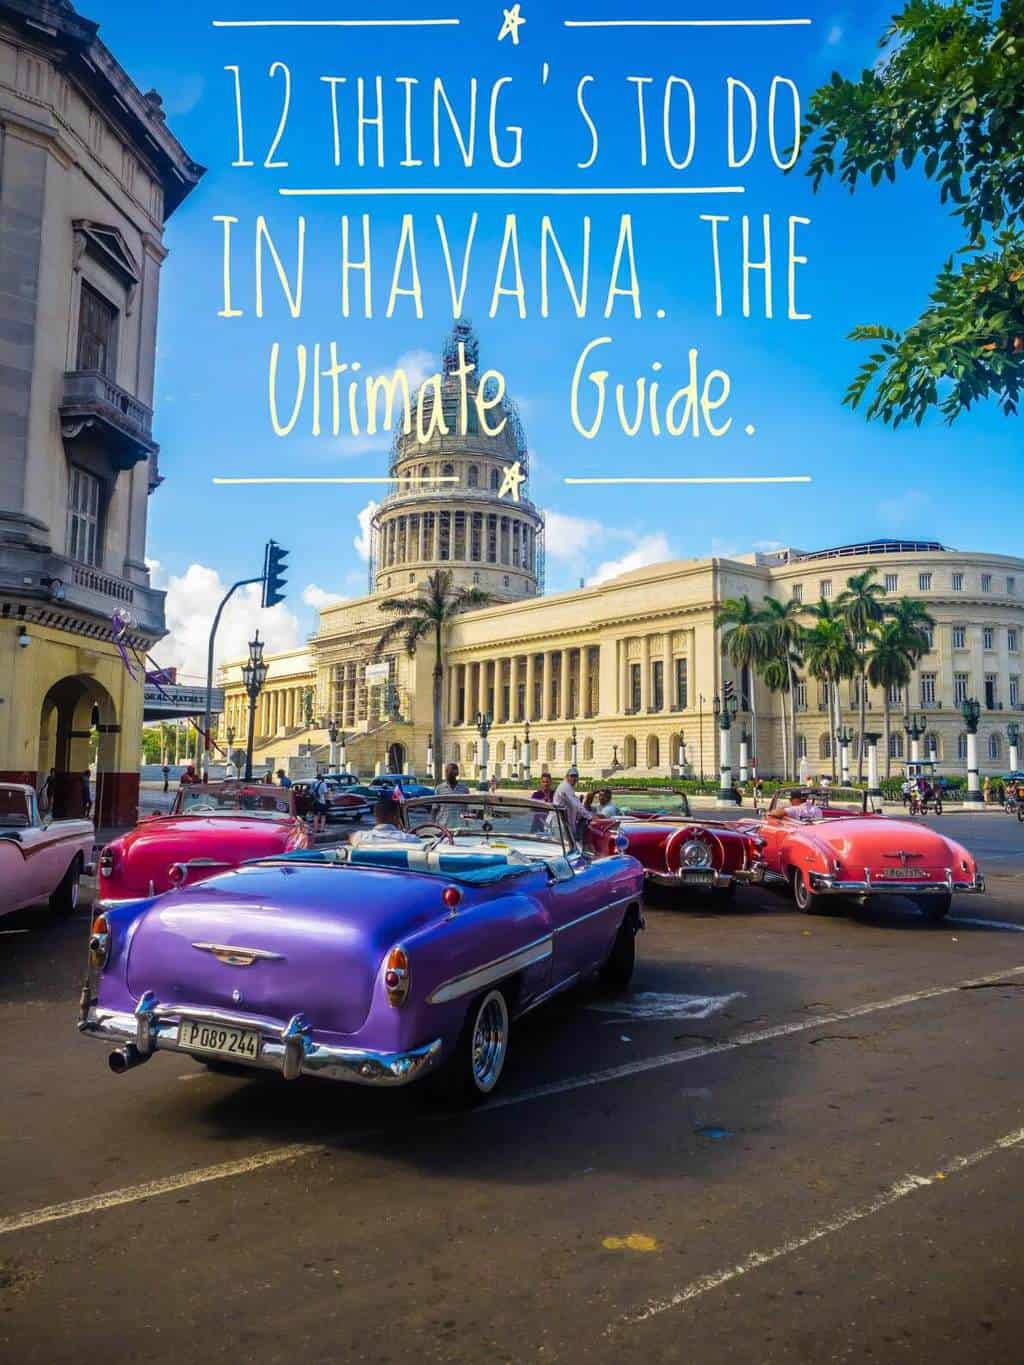 Pinterest image for the best things to do in Havana, Cuba